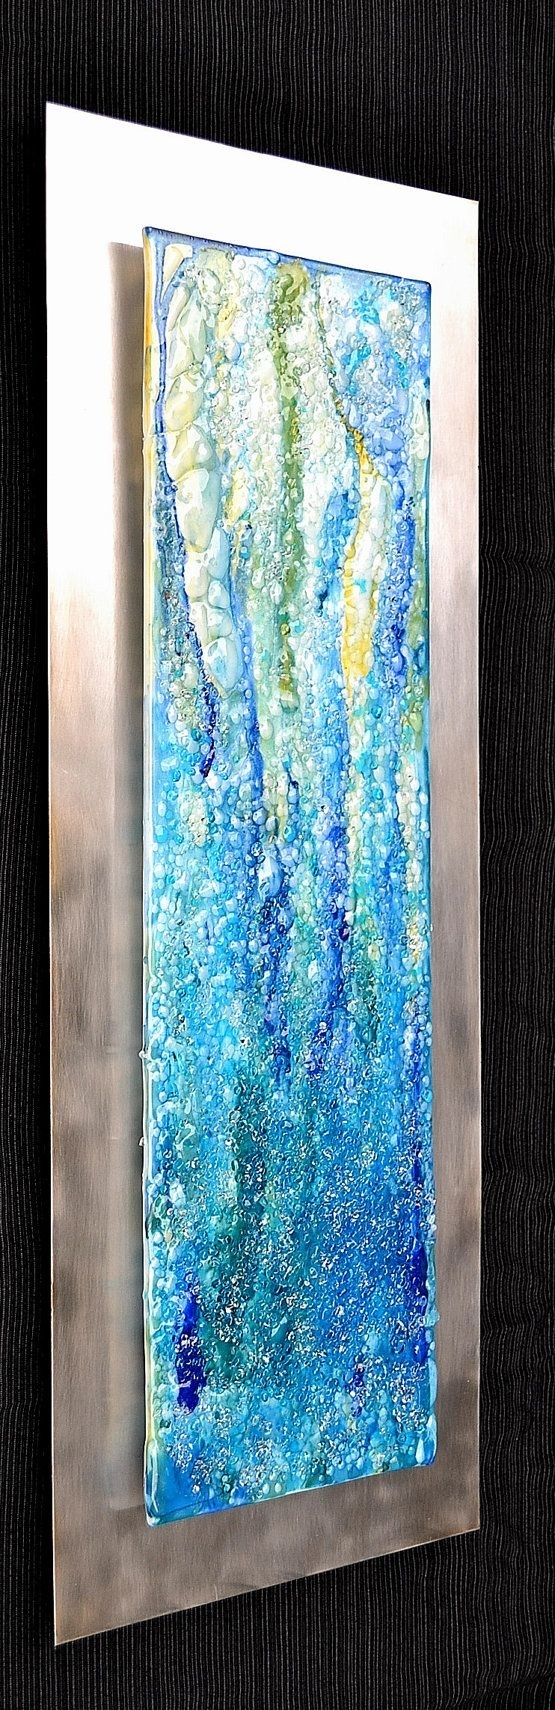 Waterfall – Modern Fused Glass Wall Hanging Art On Stainless Steel Pertaining To 2018 Glass Wall Art (View 15 of 15)